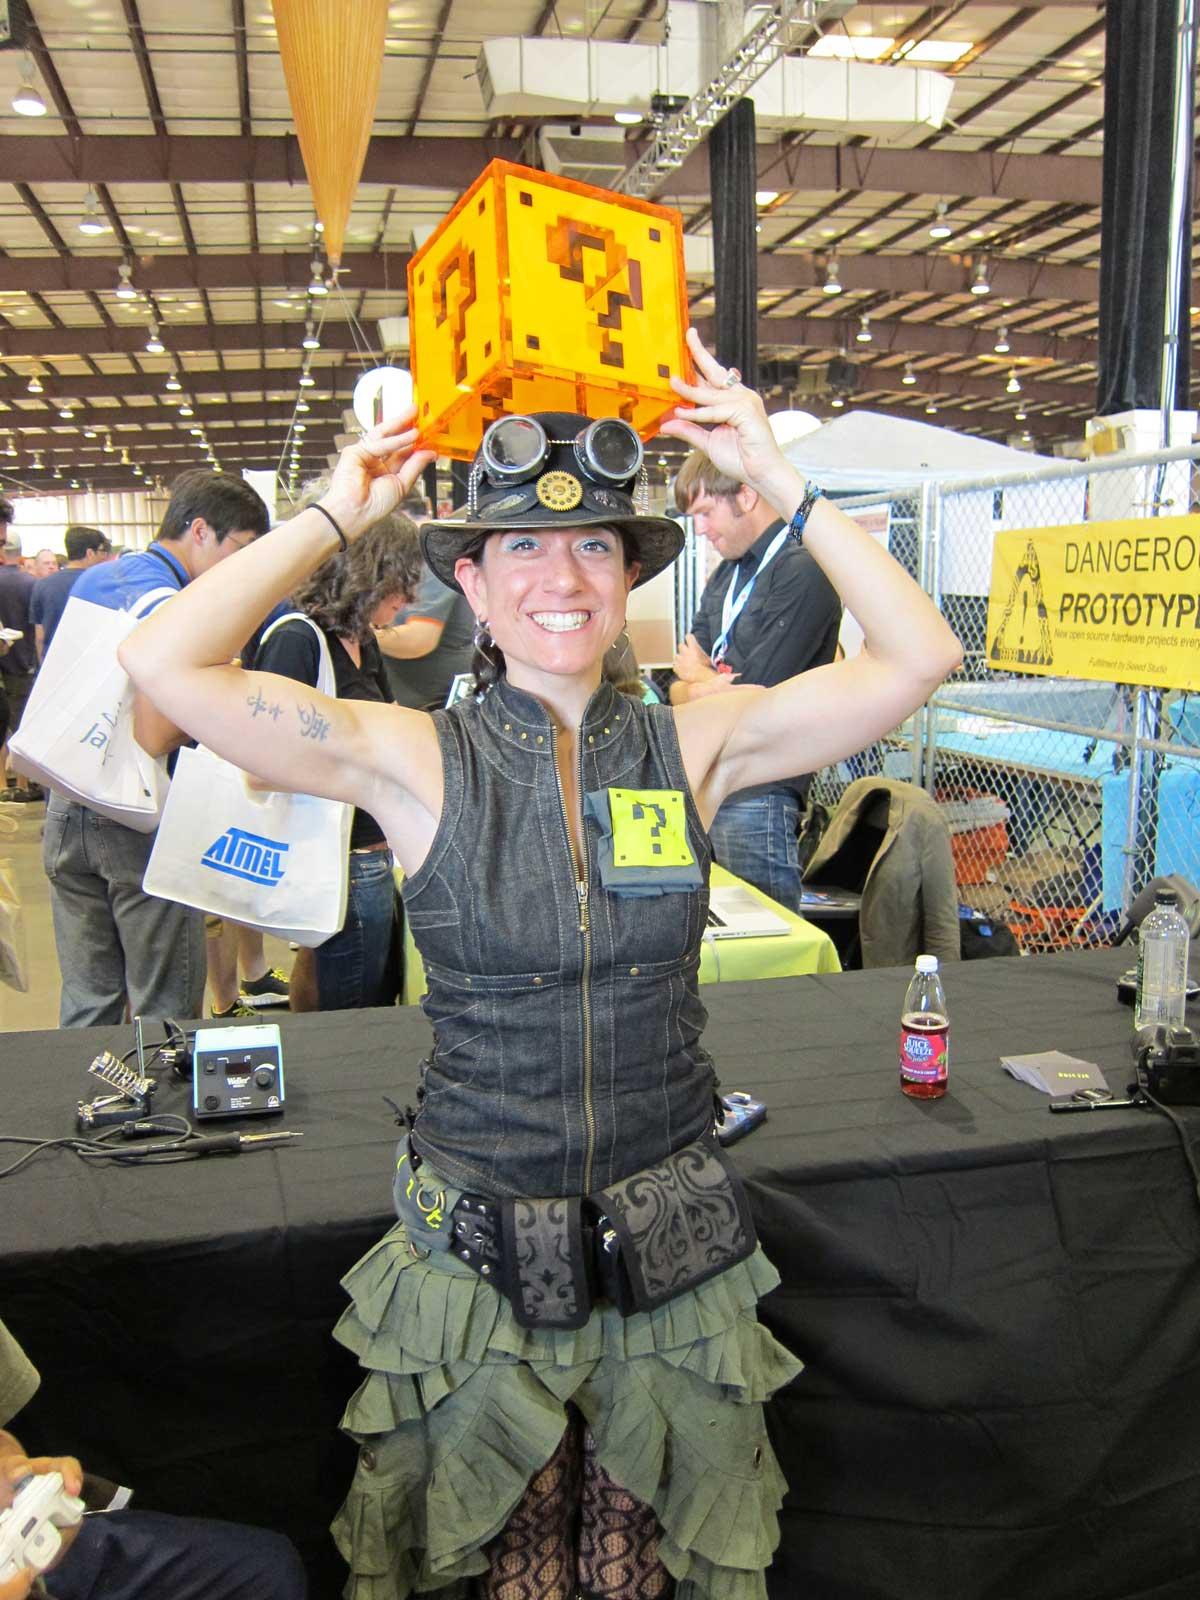 Cool Clothes and Styles of Maker Faire Attendees